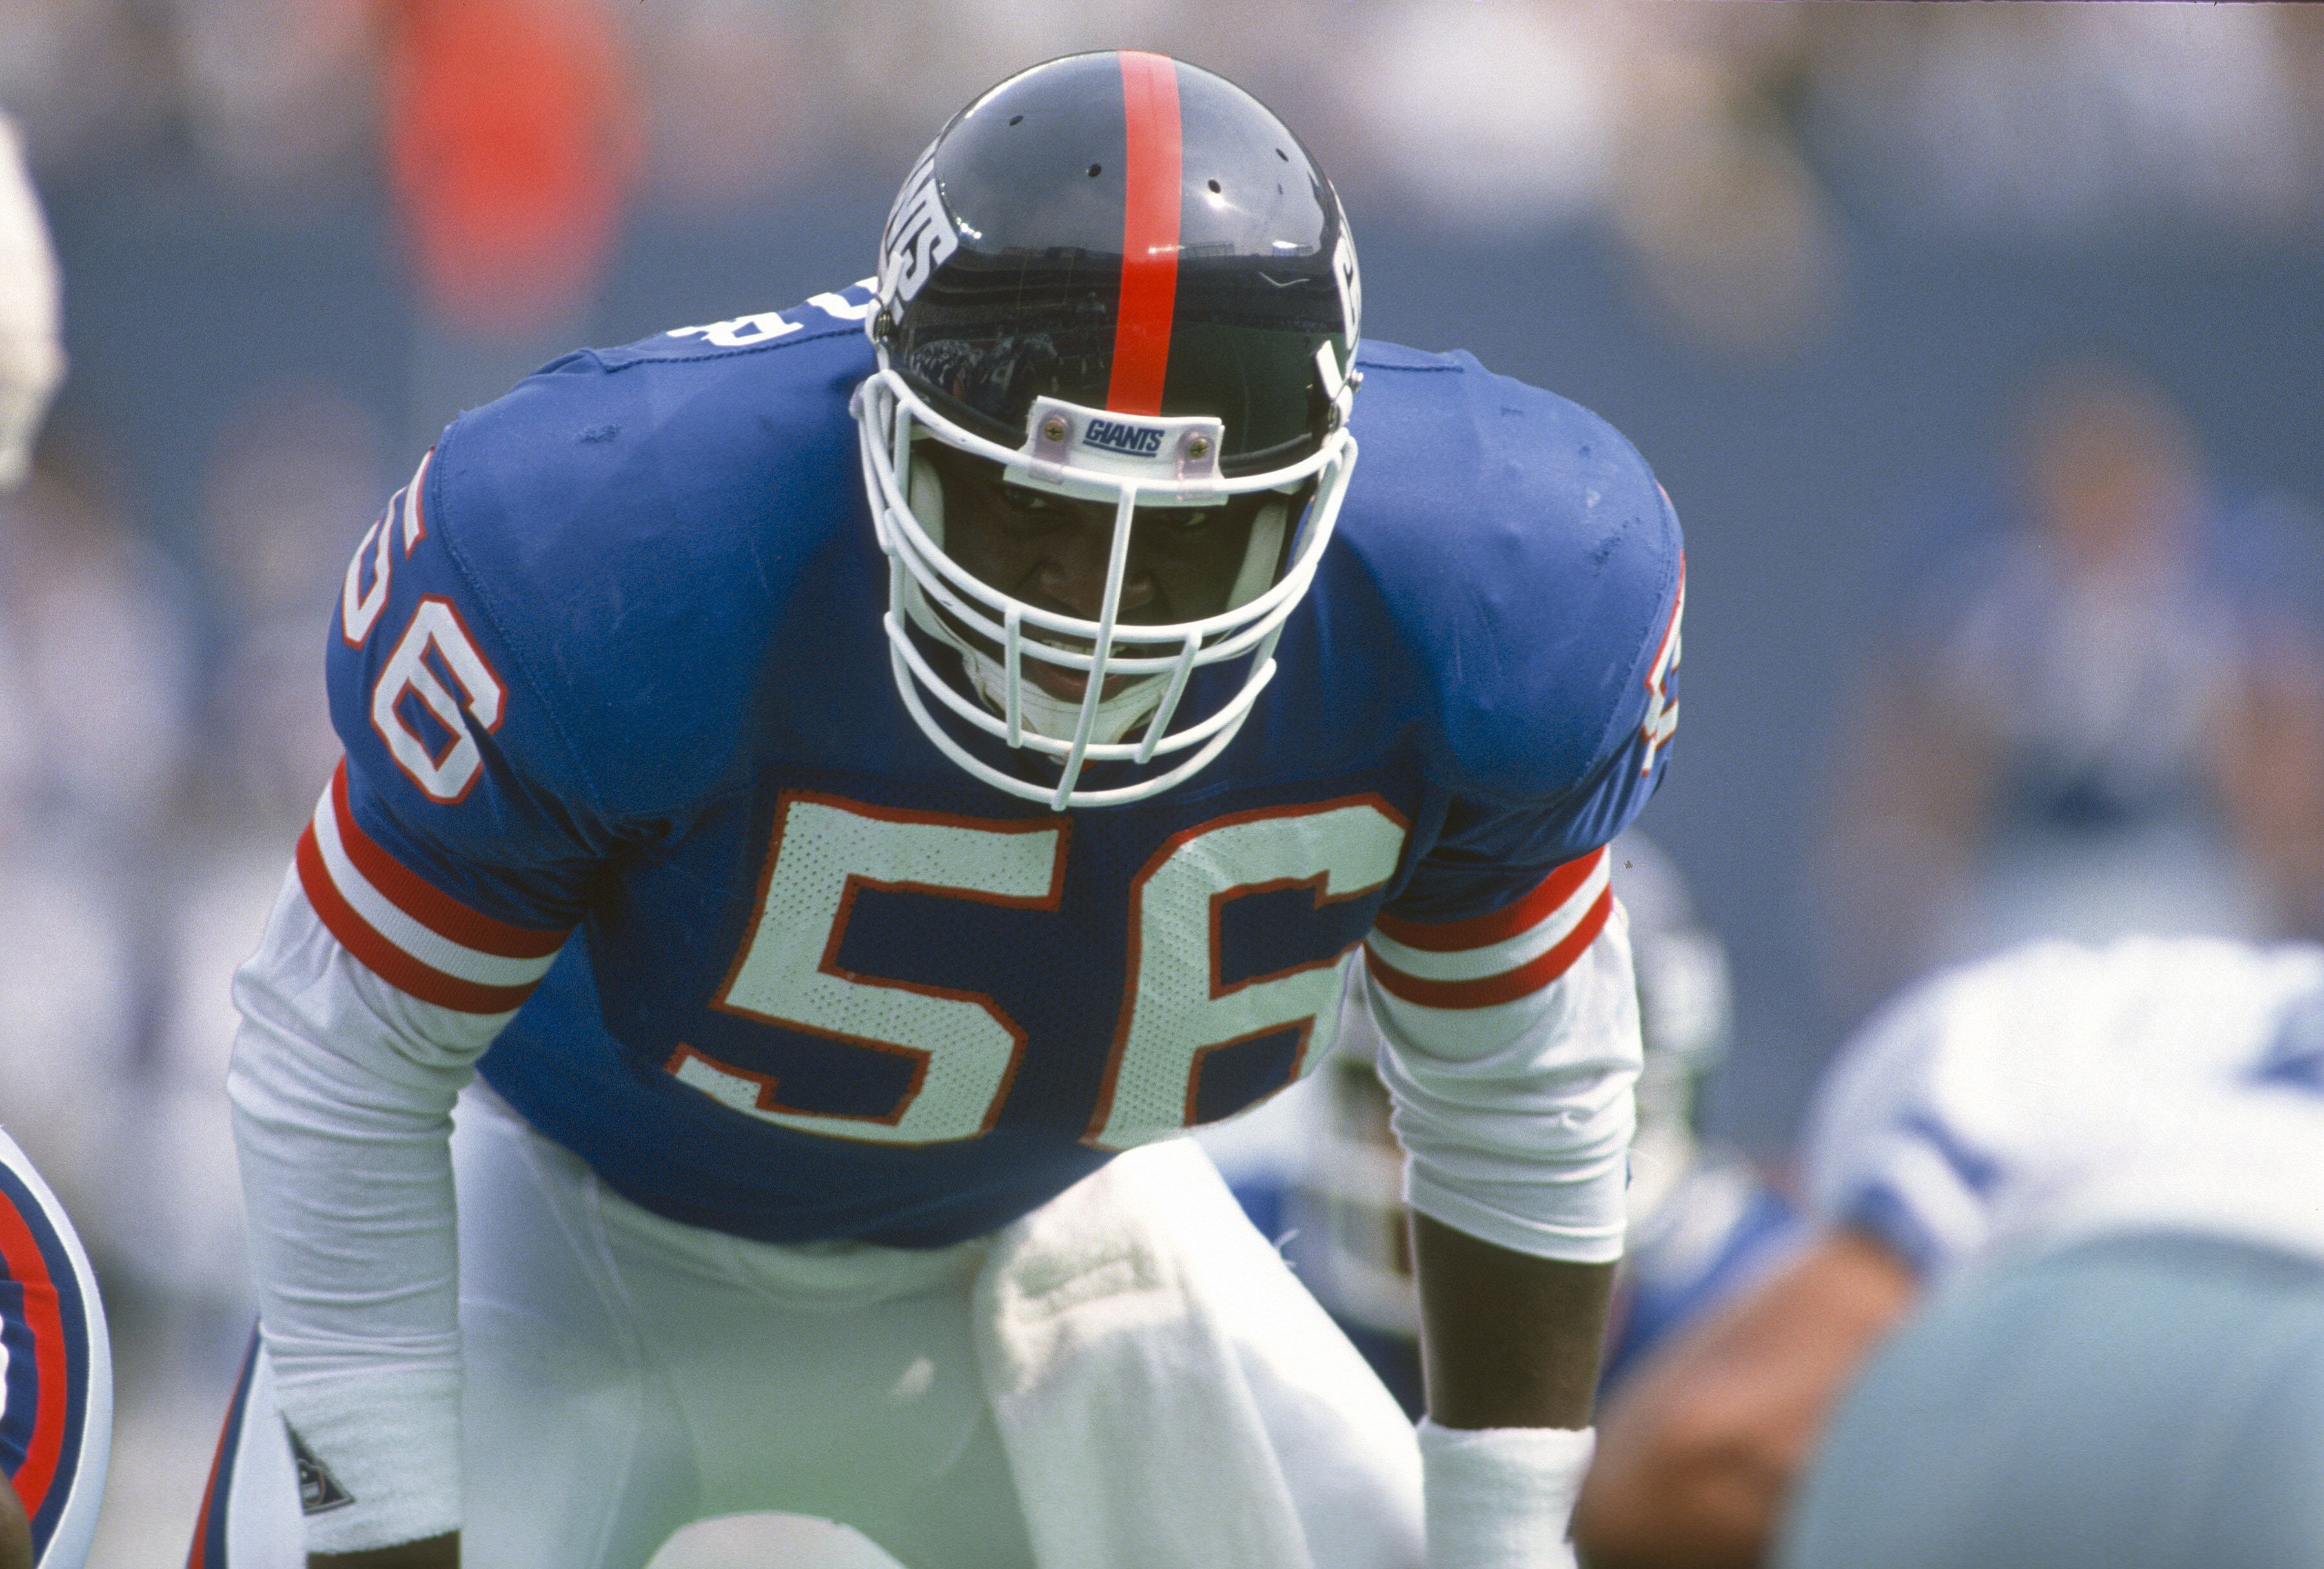 All Nfl Football Players: NFL: Top 25 Most Feared Players Of All-Time